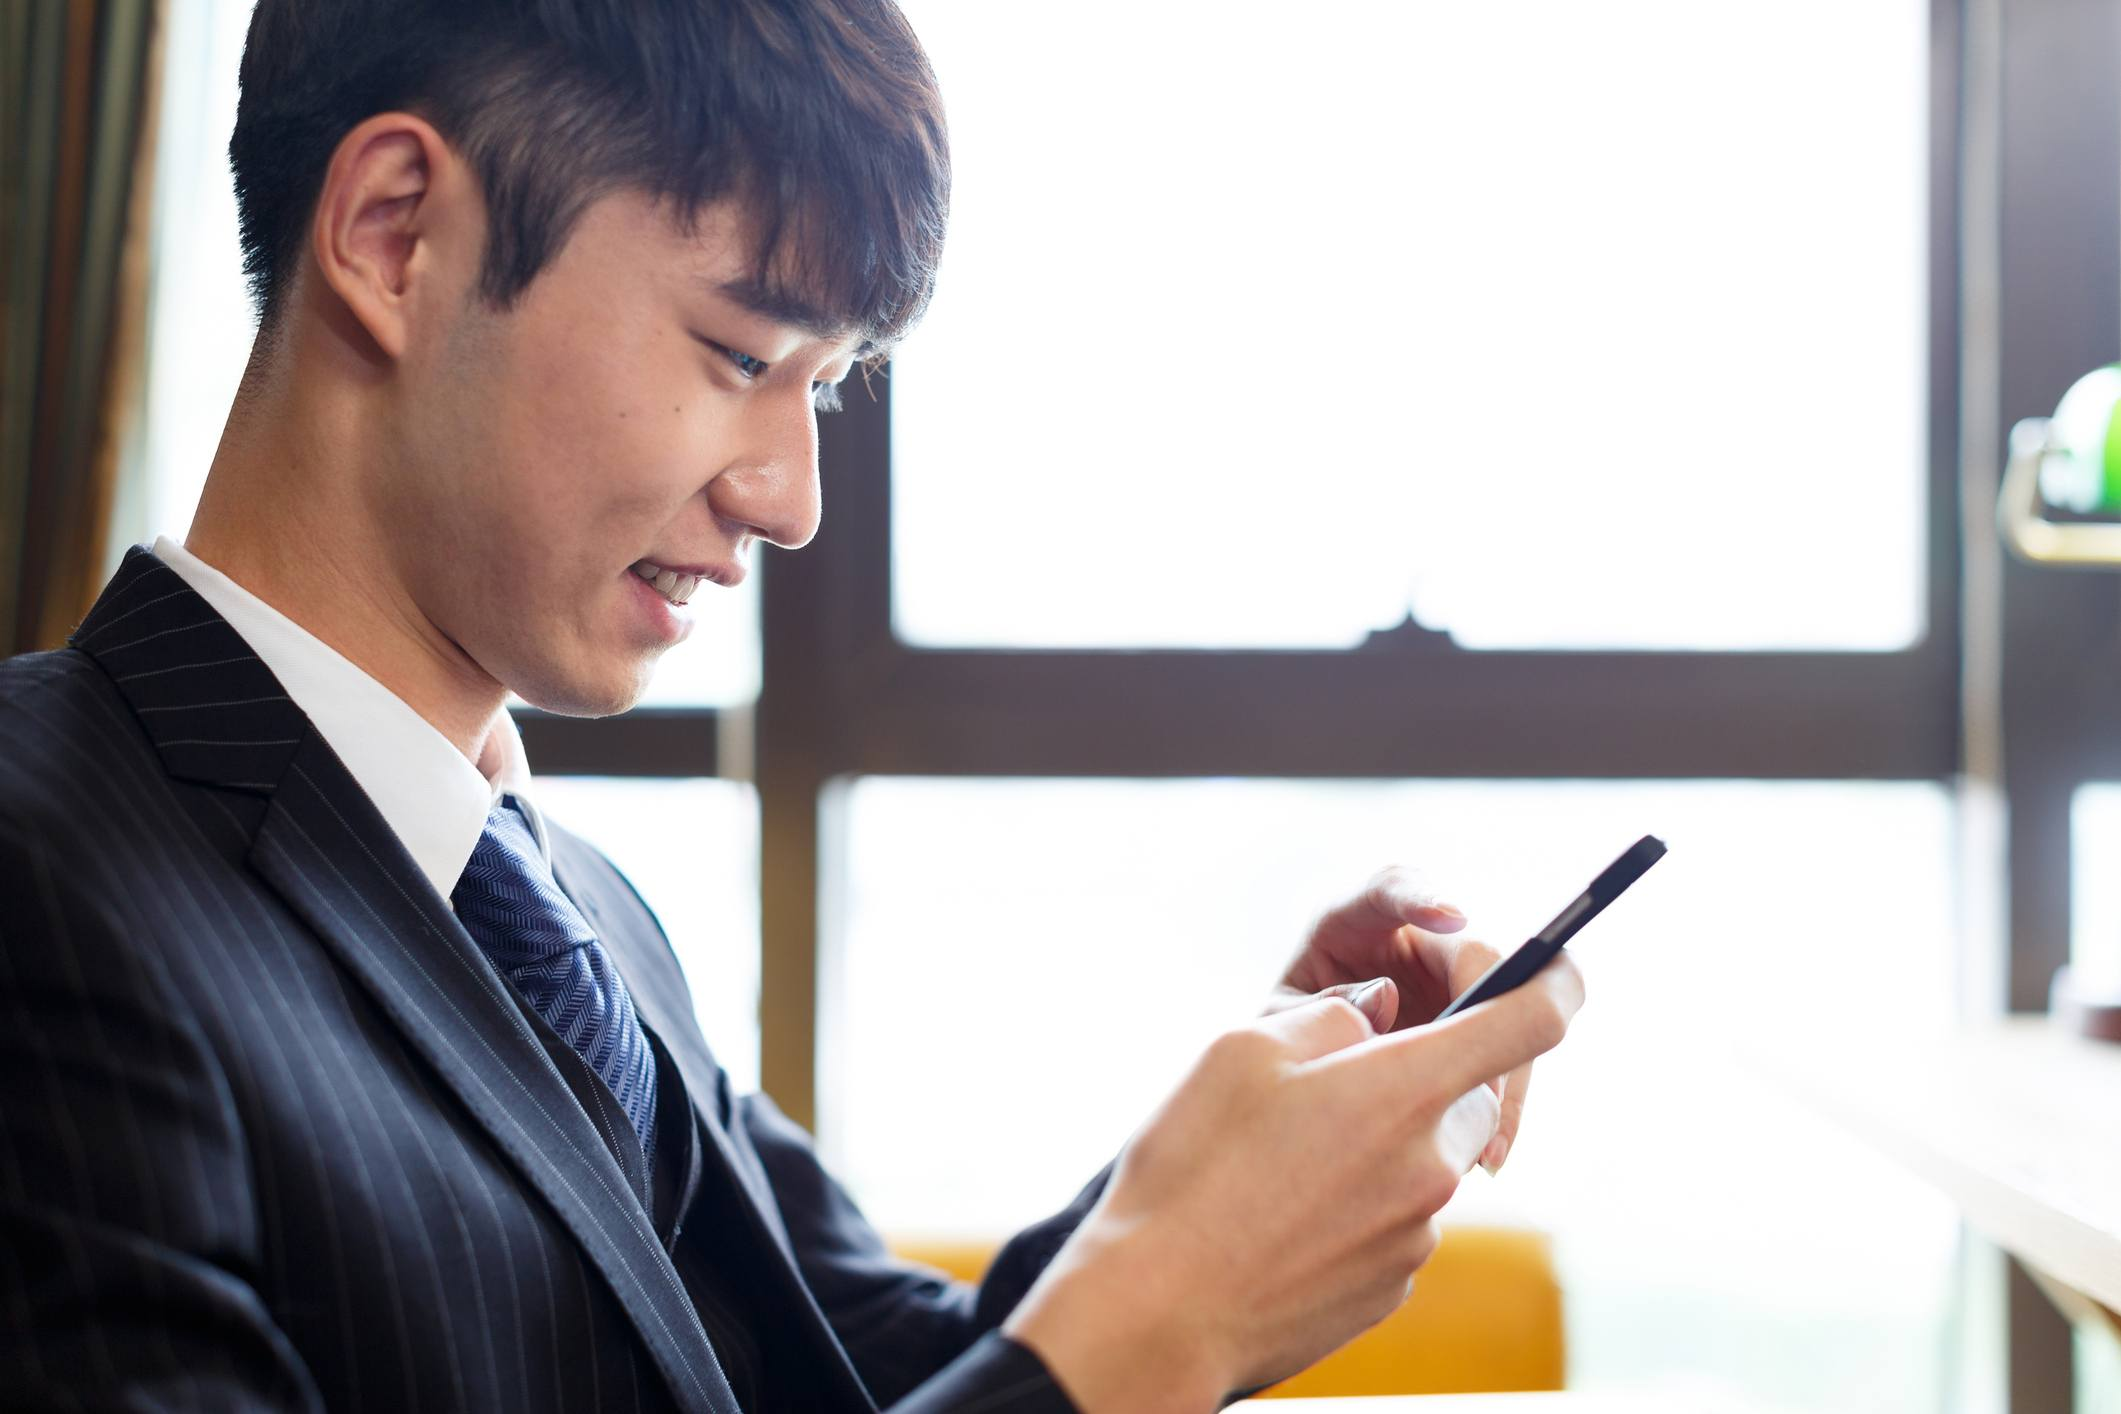 man in suit on cellphone